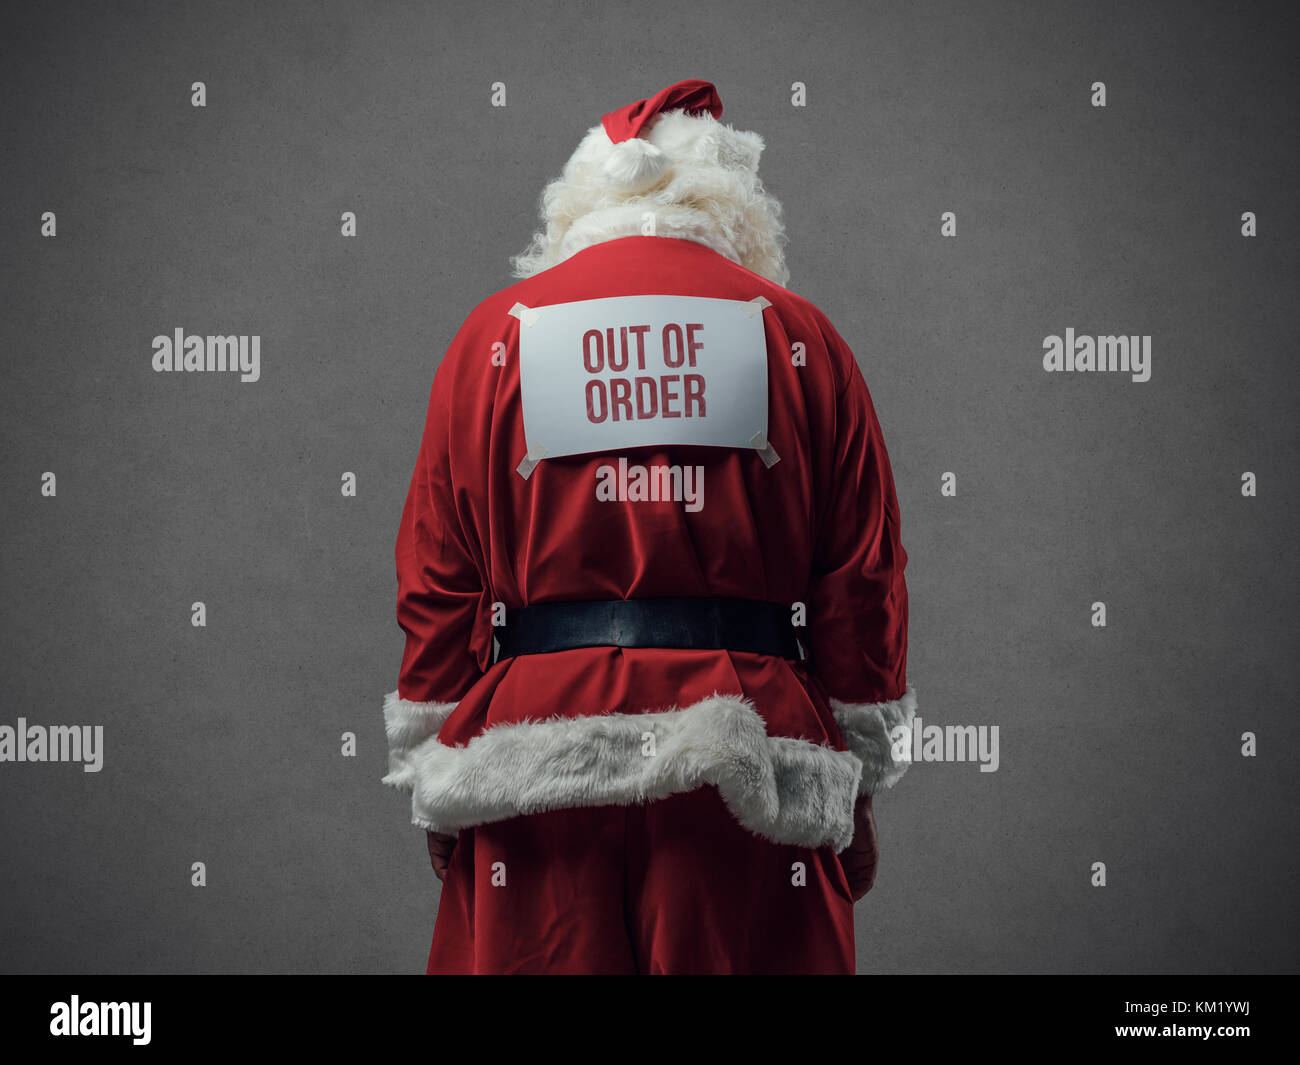 Santa Claus with out of order sign on his back, he is looking down, back view - Stock Image